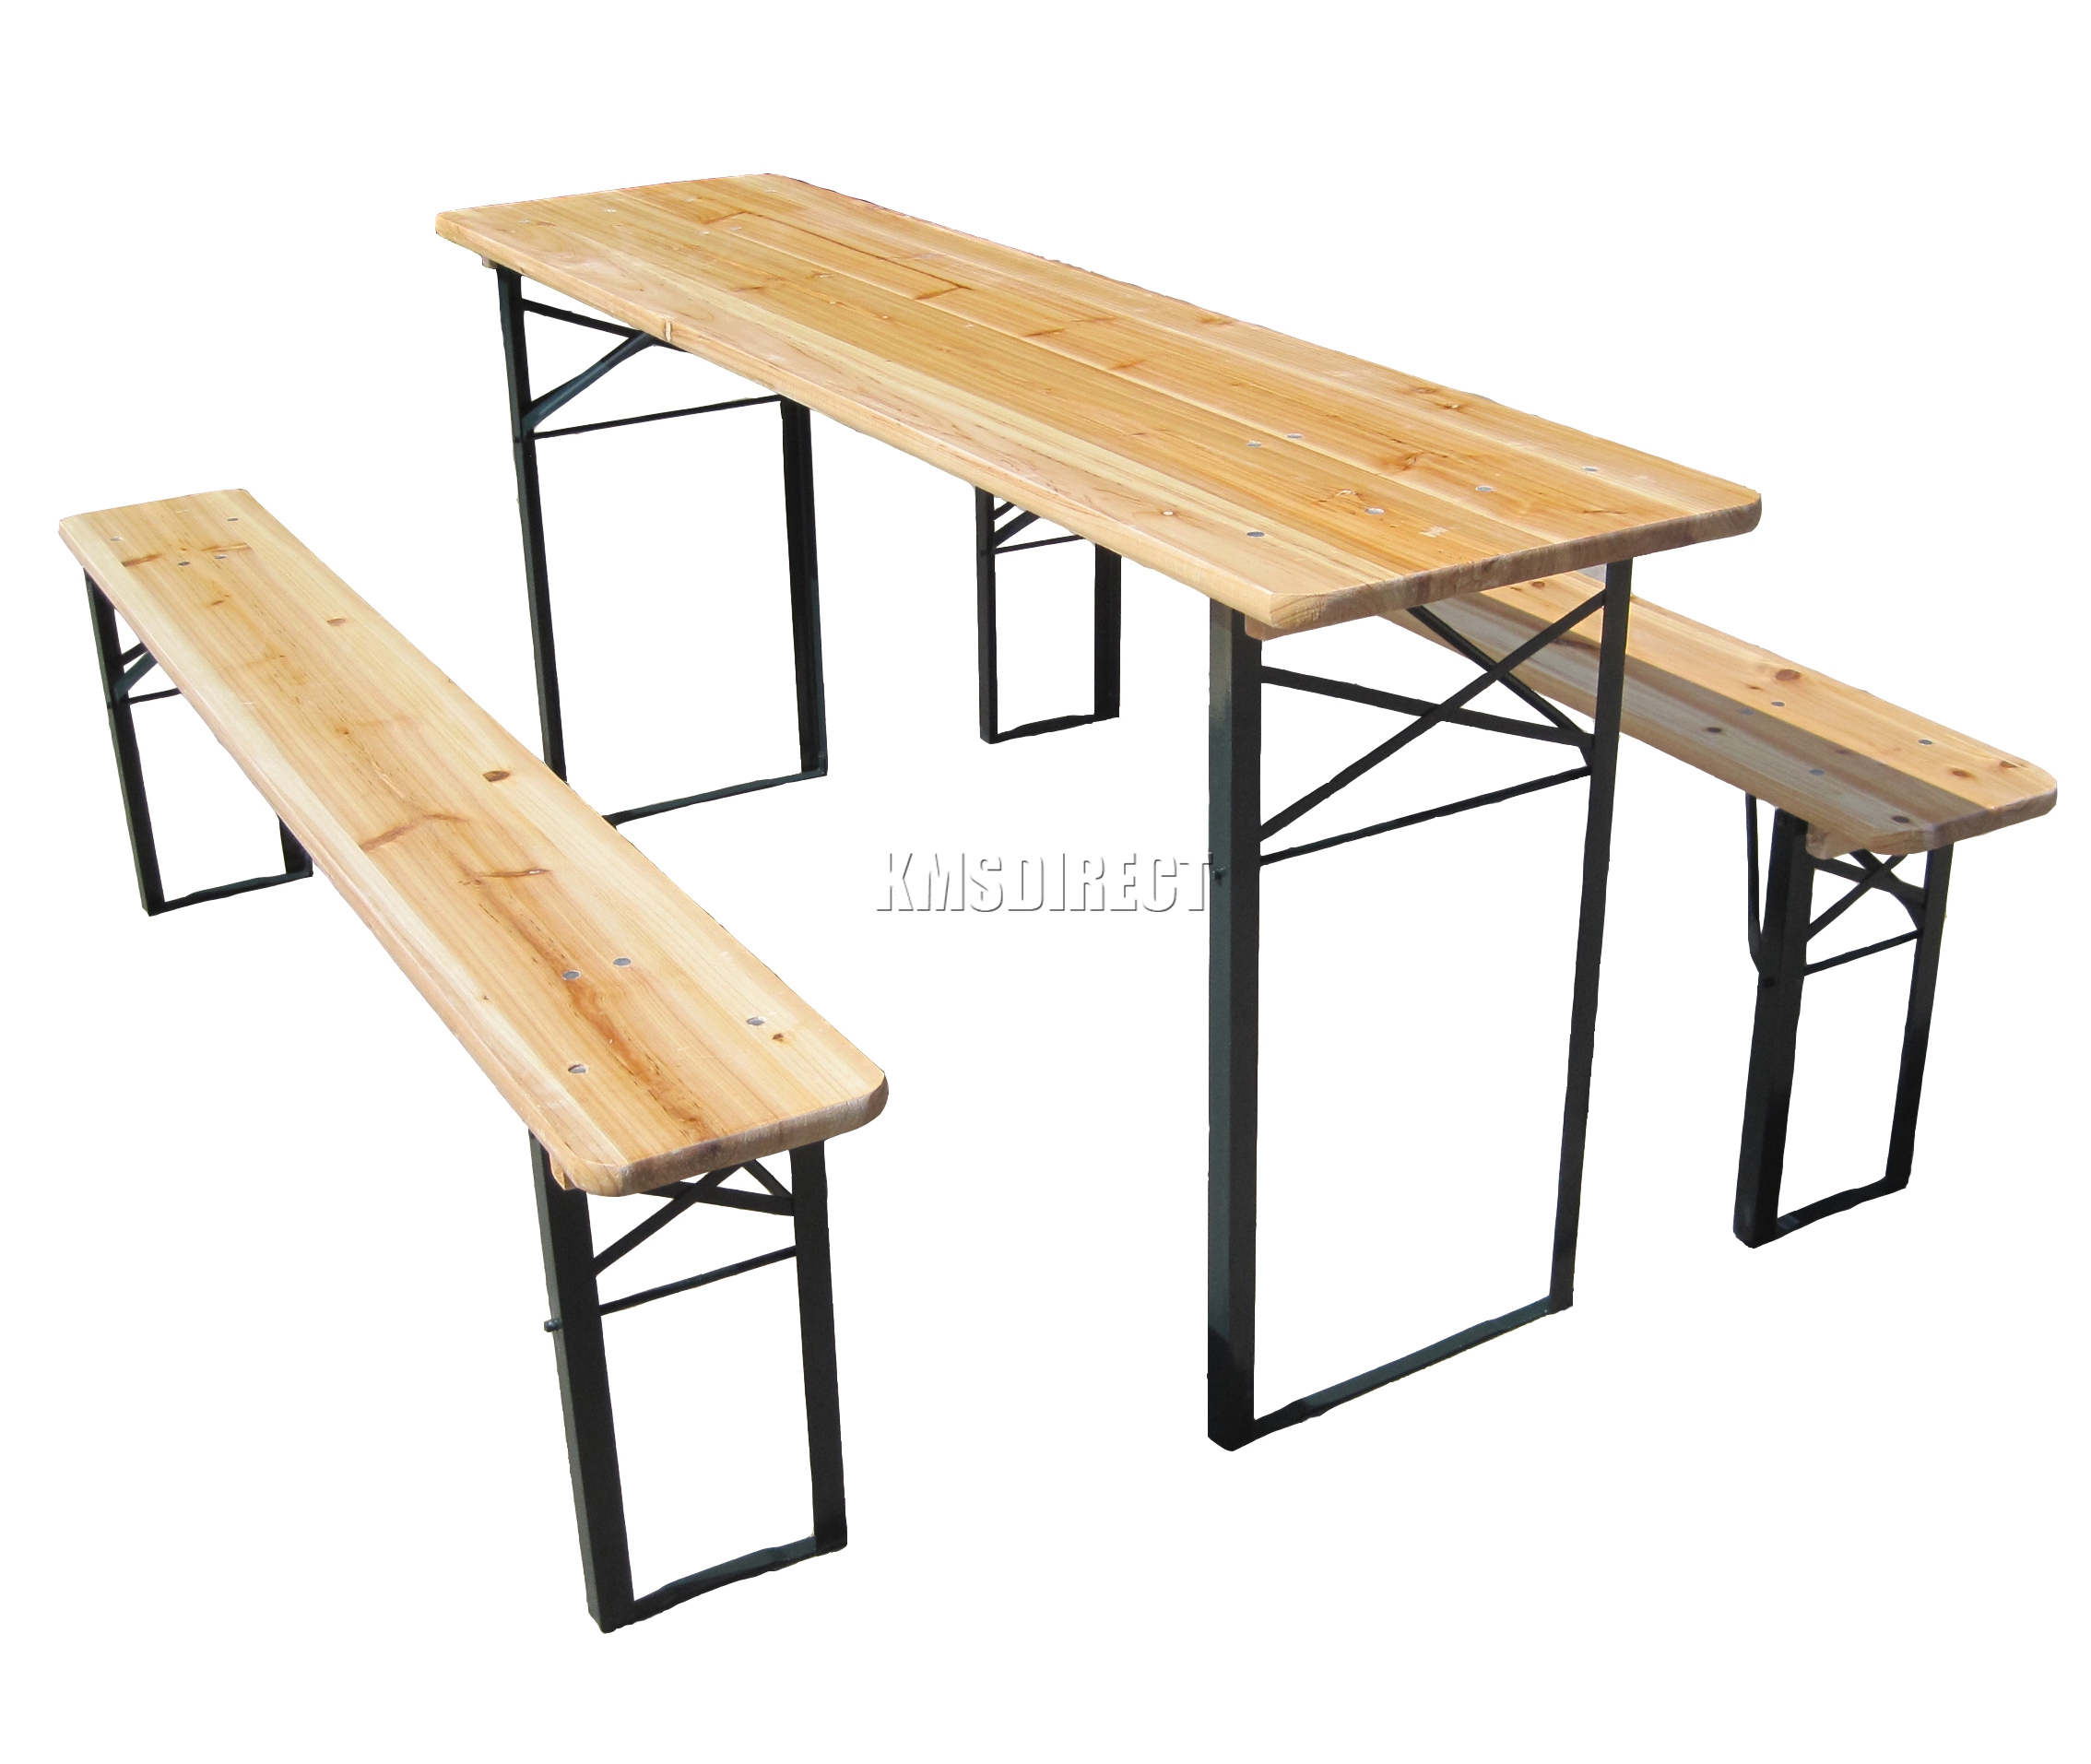 Outdoor wooden folding beer table bench set trestle garden for Fold up garden chairs